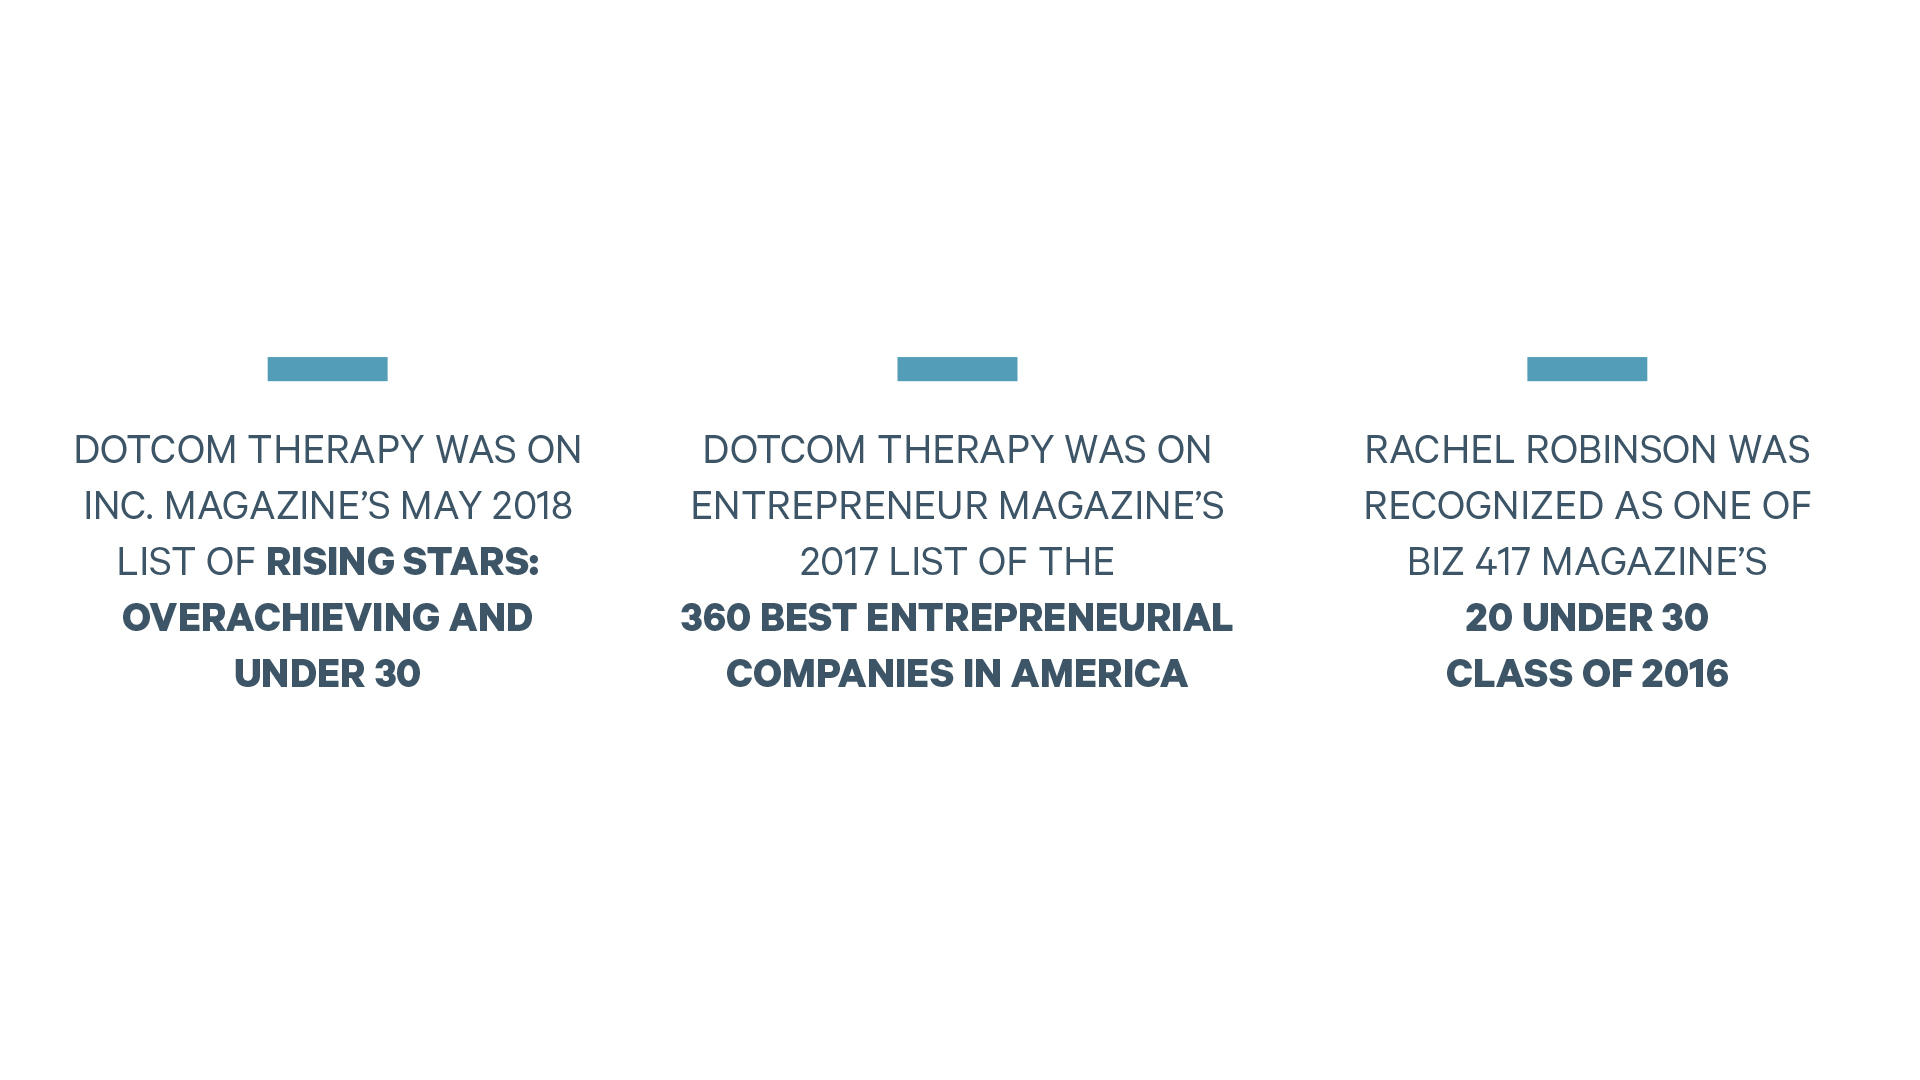 Dotcom Therapy was on Inc. Magazine's May 2018 list of rising stars: Overachieving and under 30